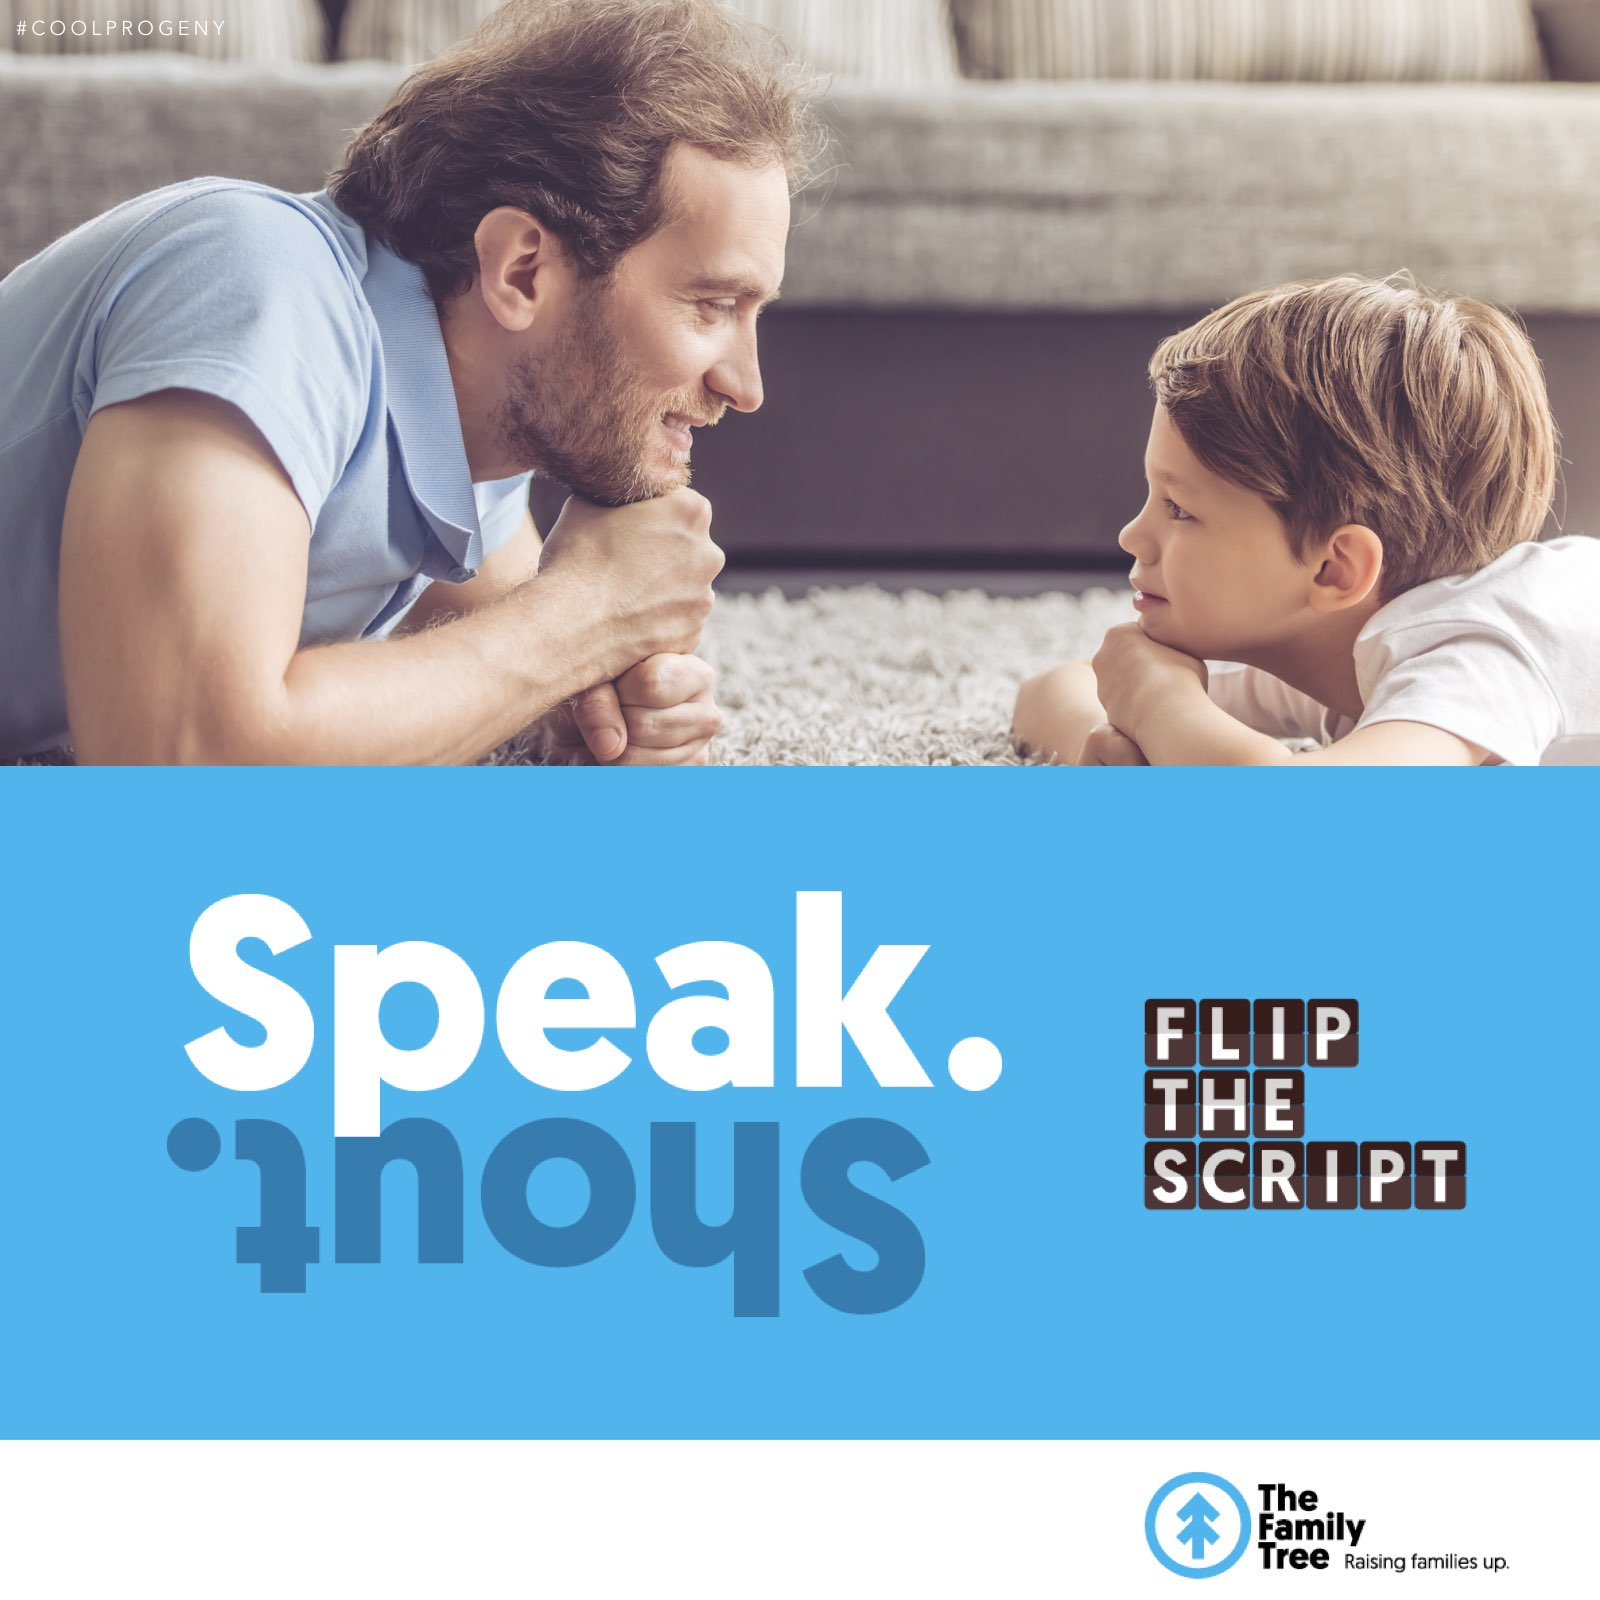 Flip the Script: How To Stop Yelling At Your Kids  - (cool) progeny with The Family Tree